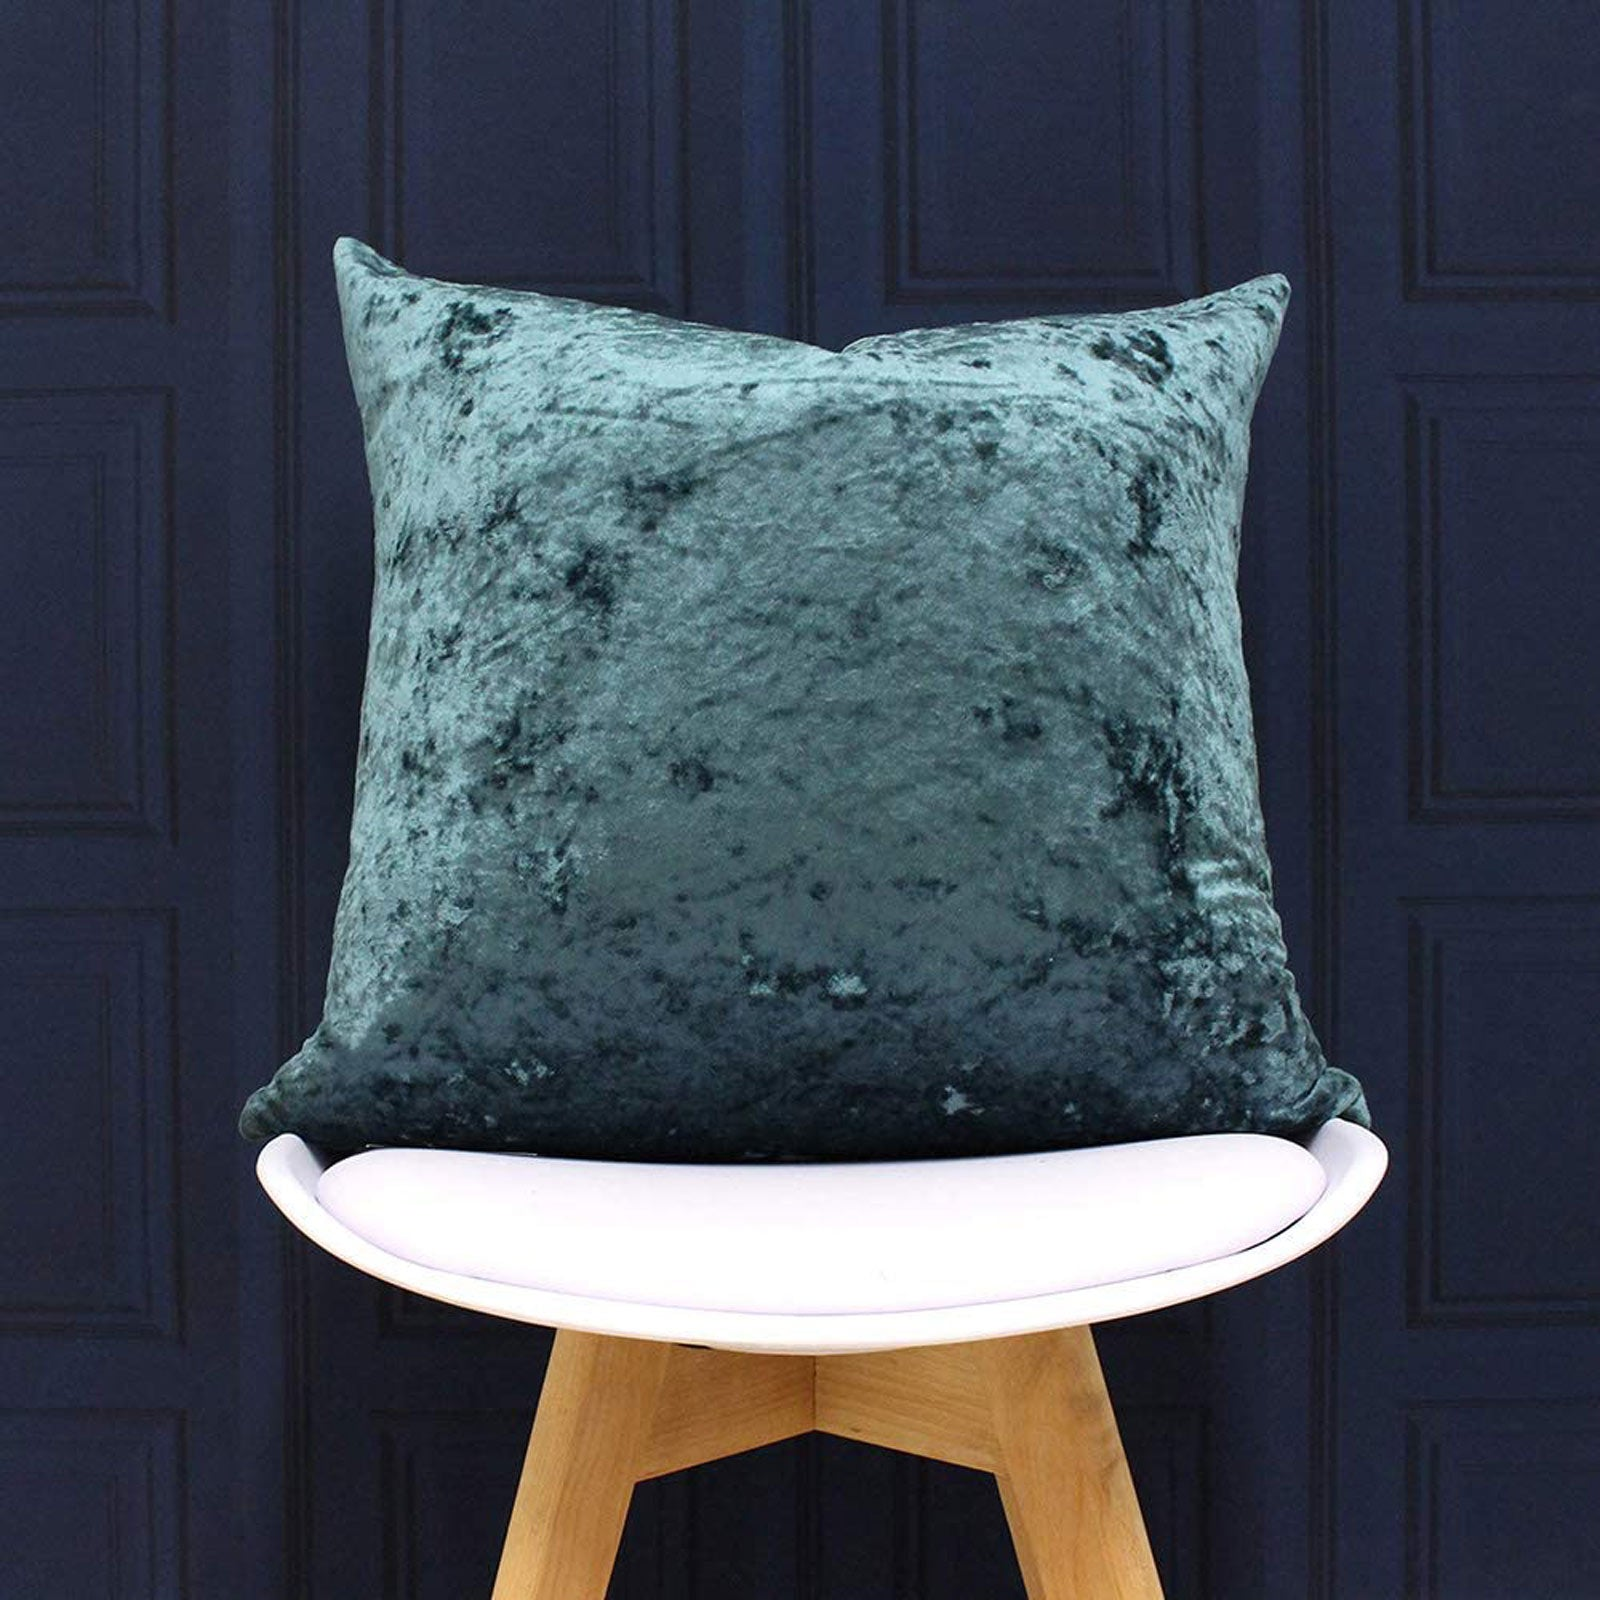 Verona Crushed Velvet Teal Filled Cushions 22'' x 22'' -  - Ideal Textiles